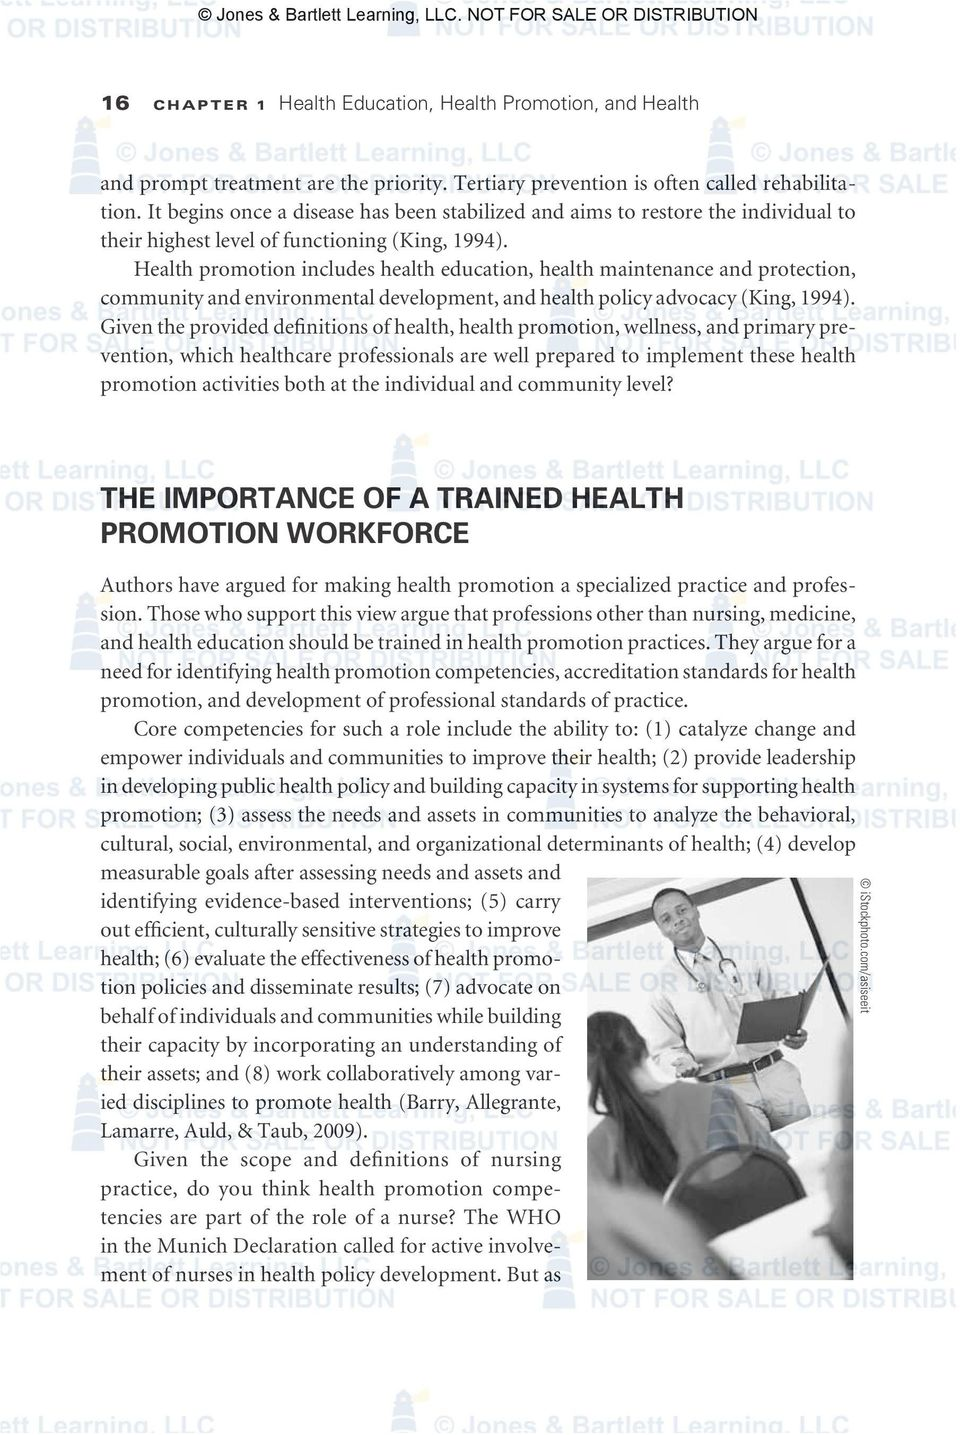 Health promotion includes health education, health maintenance and protection, community and environmental development, and health policy advocacy (King, 1994).